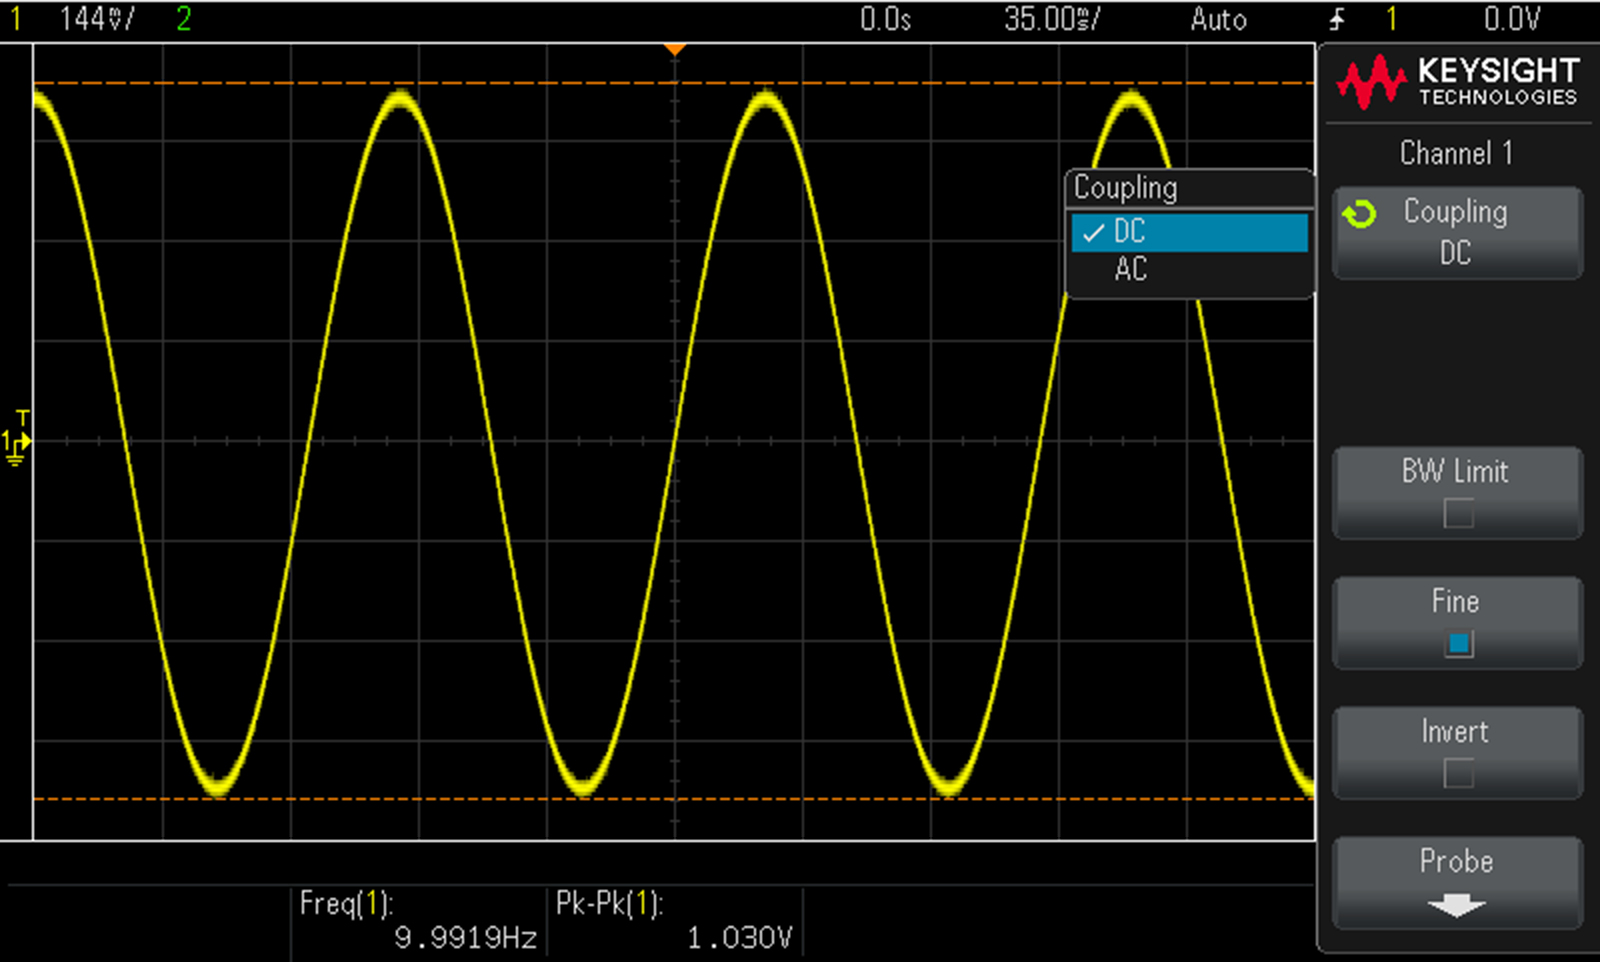 A DC Coupled sine wave